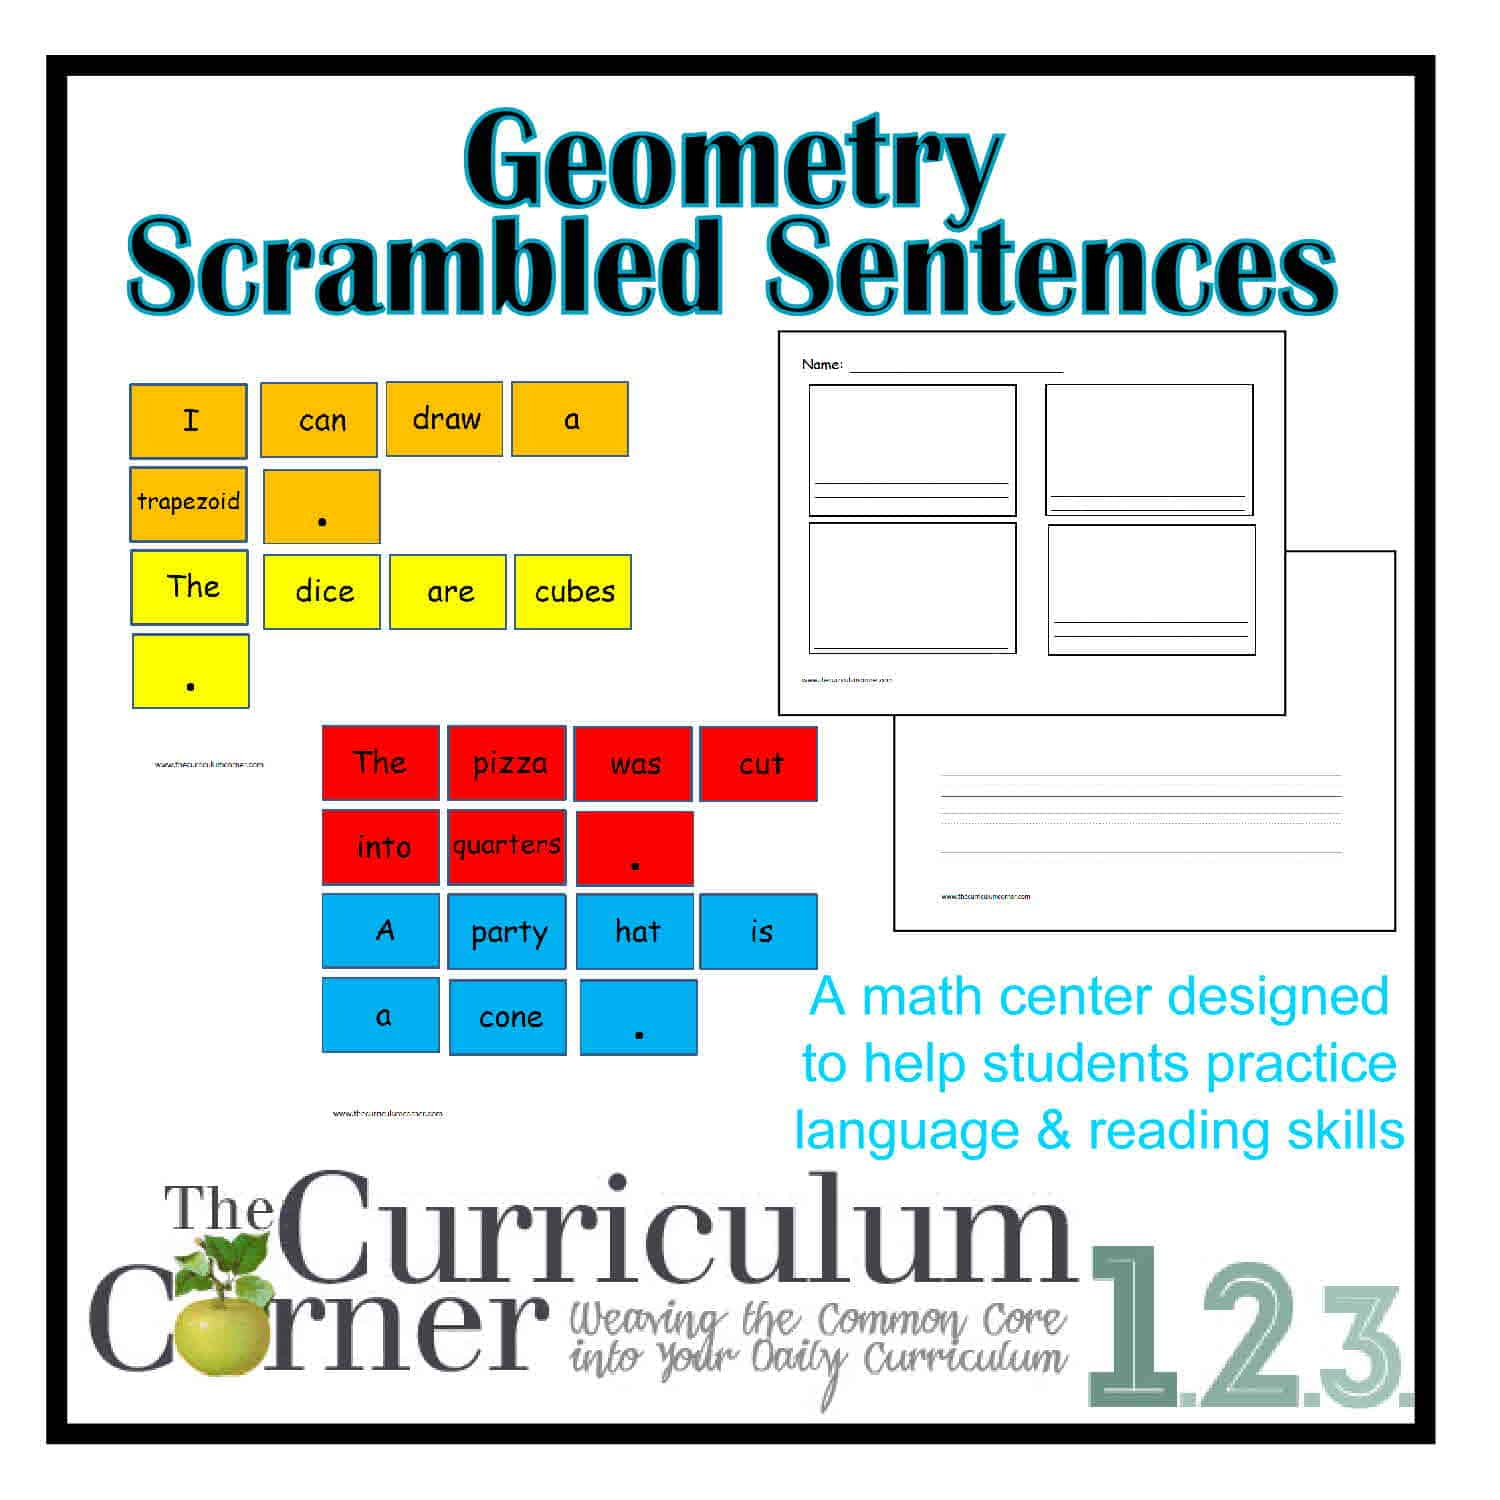 Geometry Scrambled Sentences